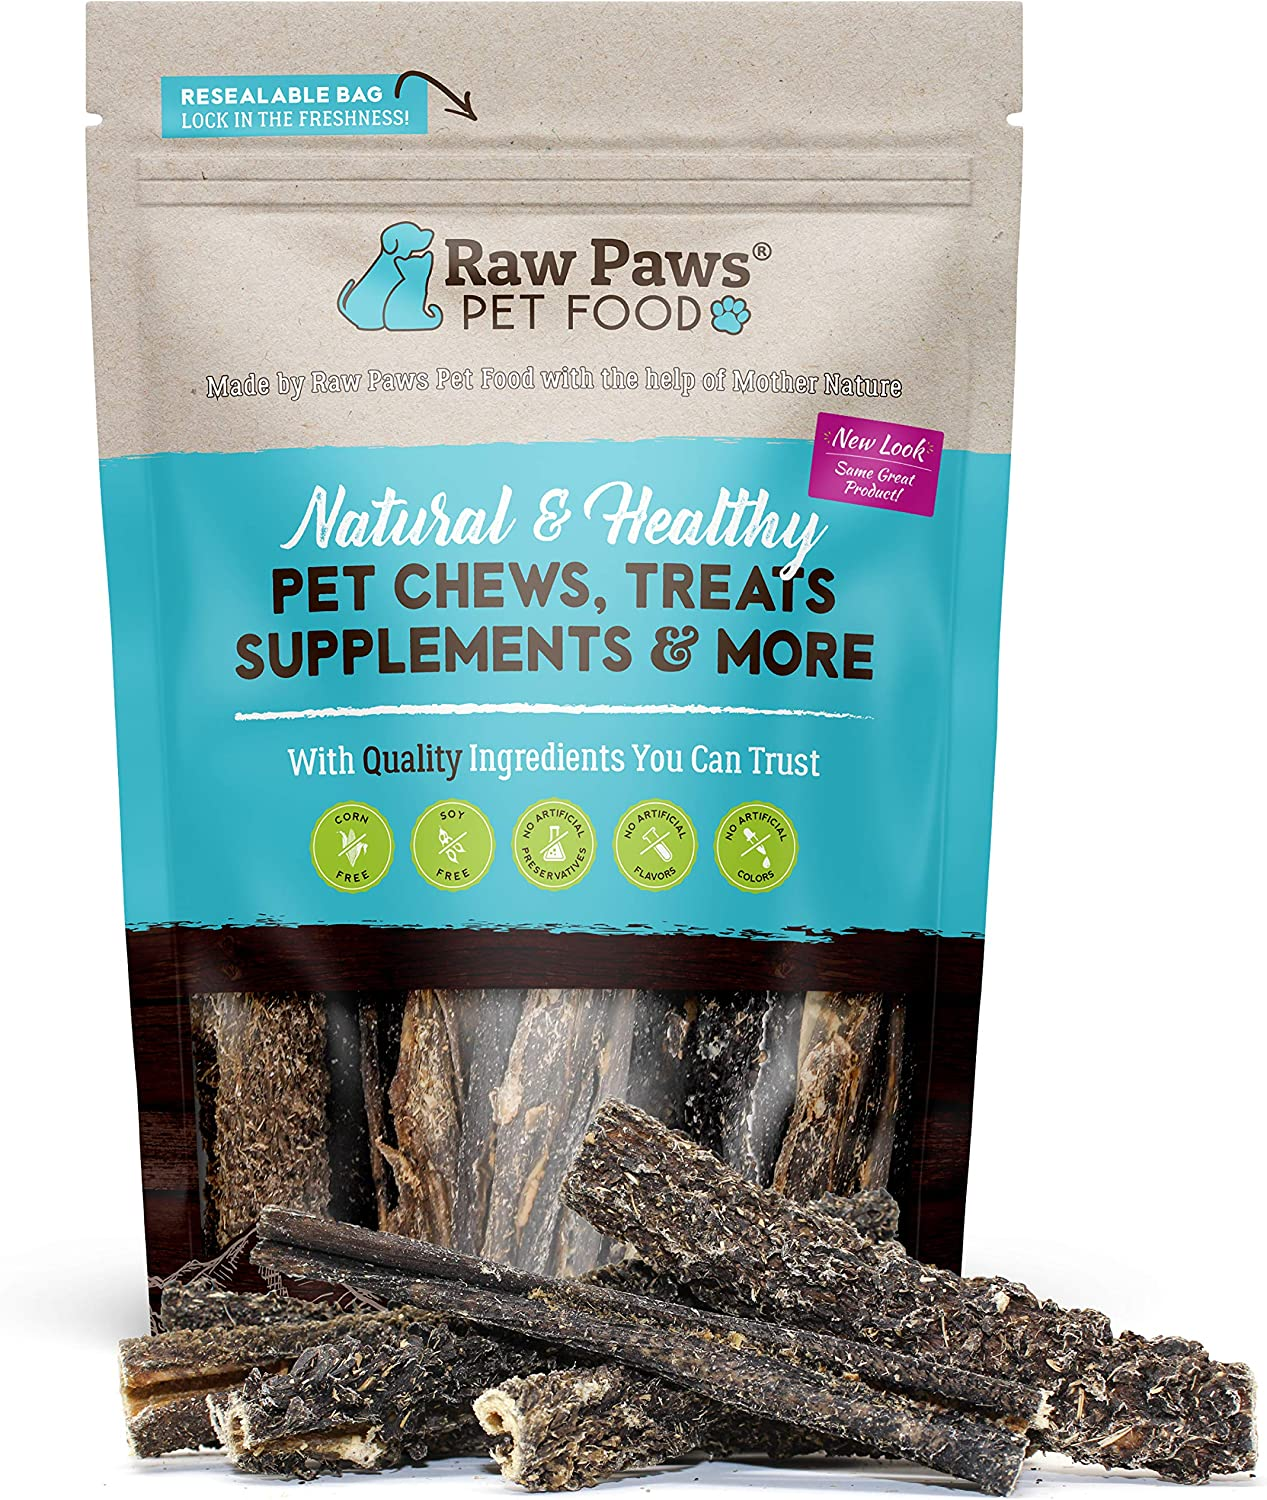 Raw Paws 6-inch Beef Green Tripe Sticks for Dogs, 10-Pack - Packed in USA - Dried Tripe Dog Treats from Free-Range, Grass Fed Cows No Added Antibiotics or Hormones - Dehydrated Green Tripe for Dogs